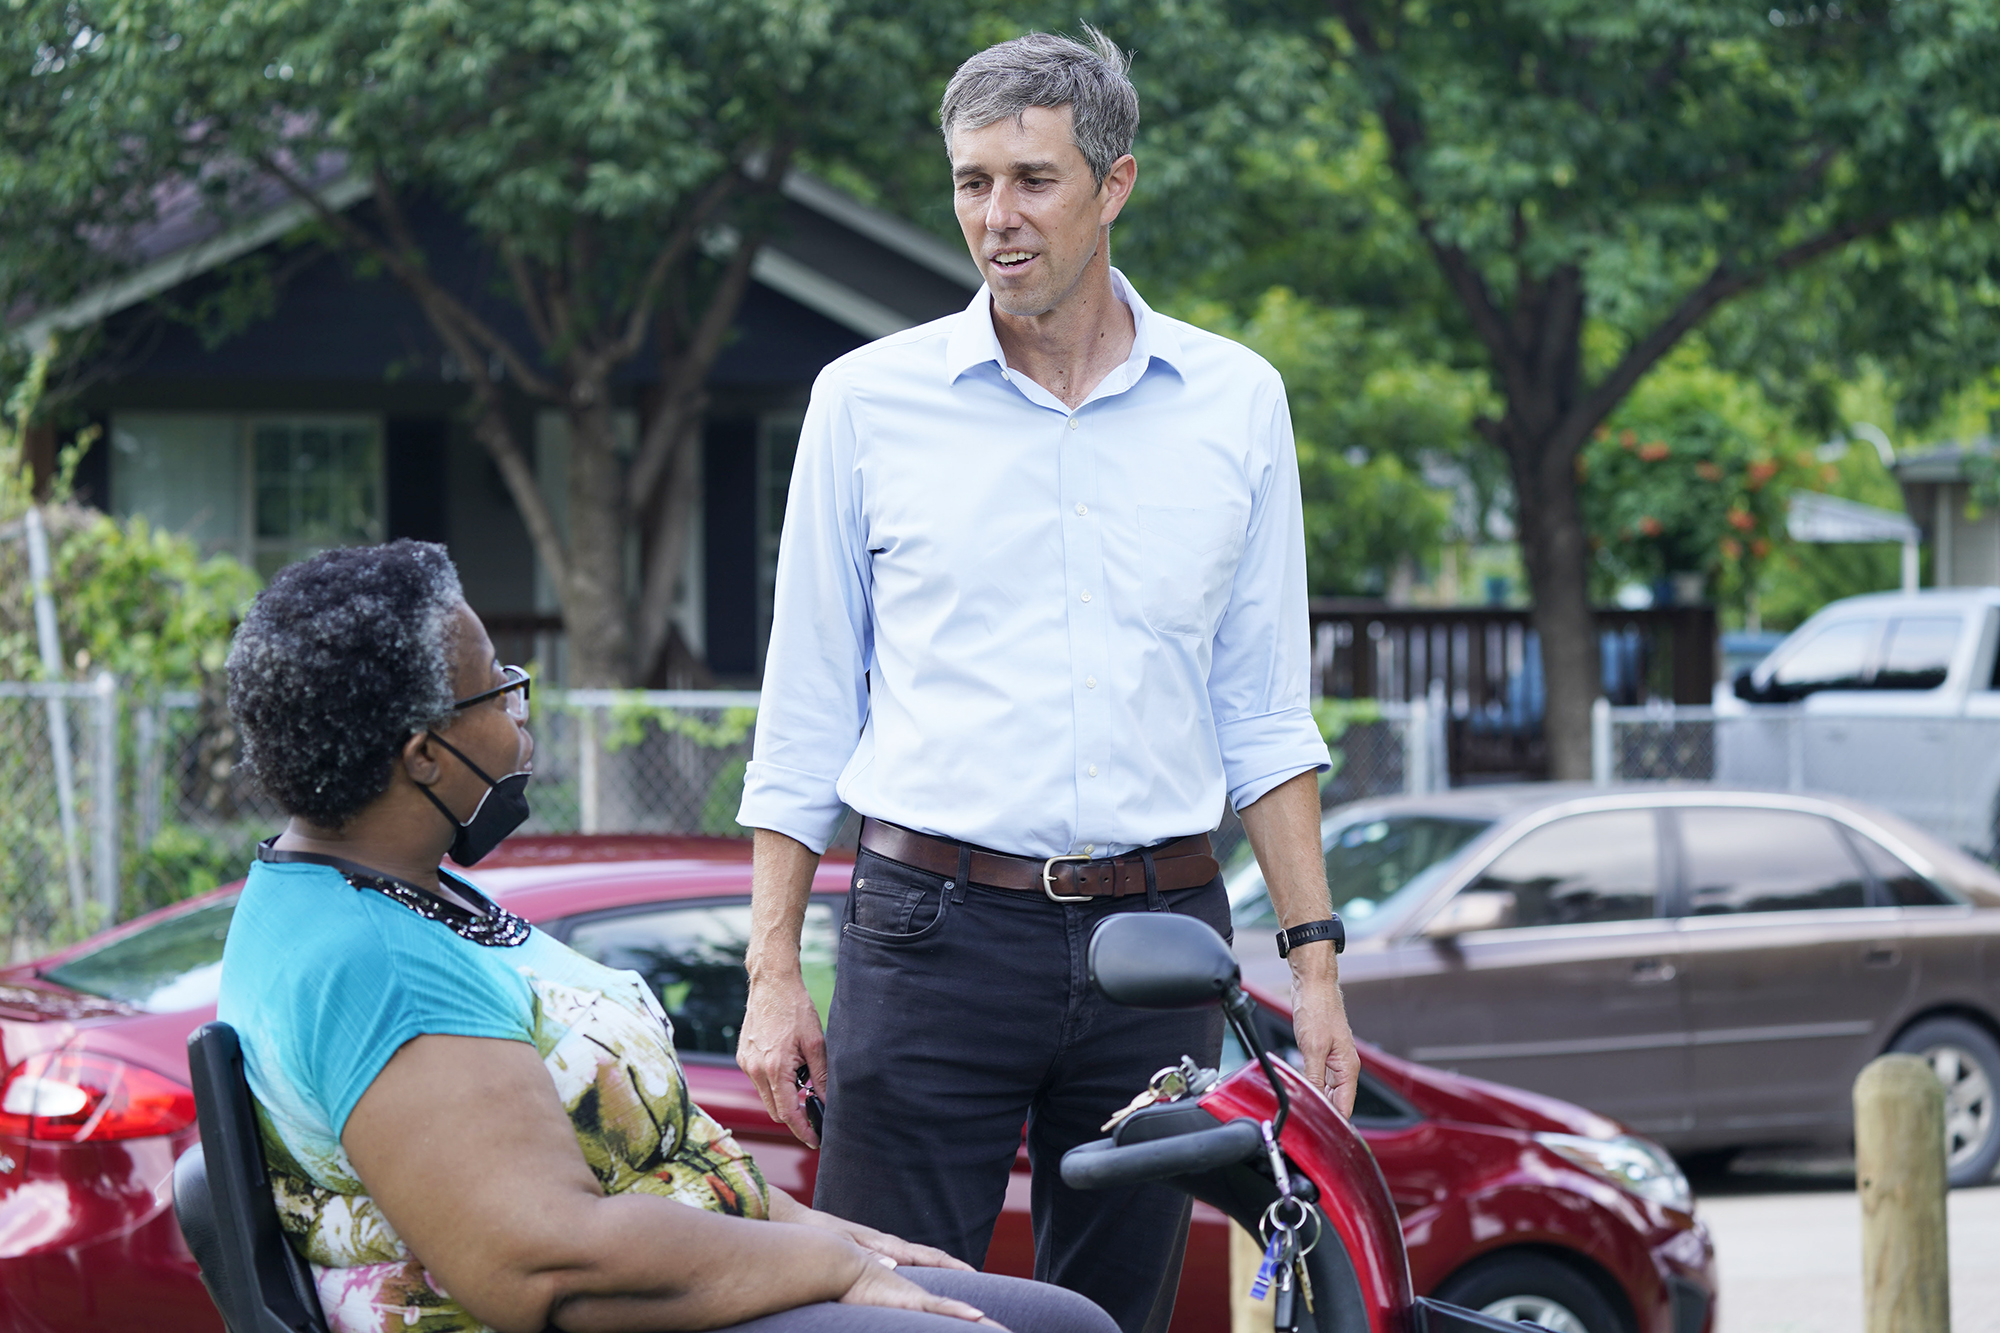 Beto O'Rourke, right, speaks with Stephanie Hanson before a canvassing drive by the Texas Organizing Project in West Dallas . The former congressman and senatorial candidate is driving an effort to gather voter support to stop Texas' SB7 voting legislation Texas Organizing Project Beto, Dallas, United States - 09 Jun 2021